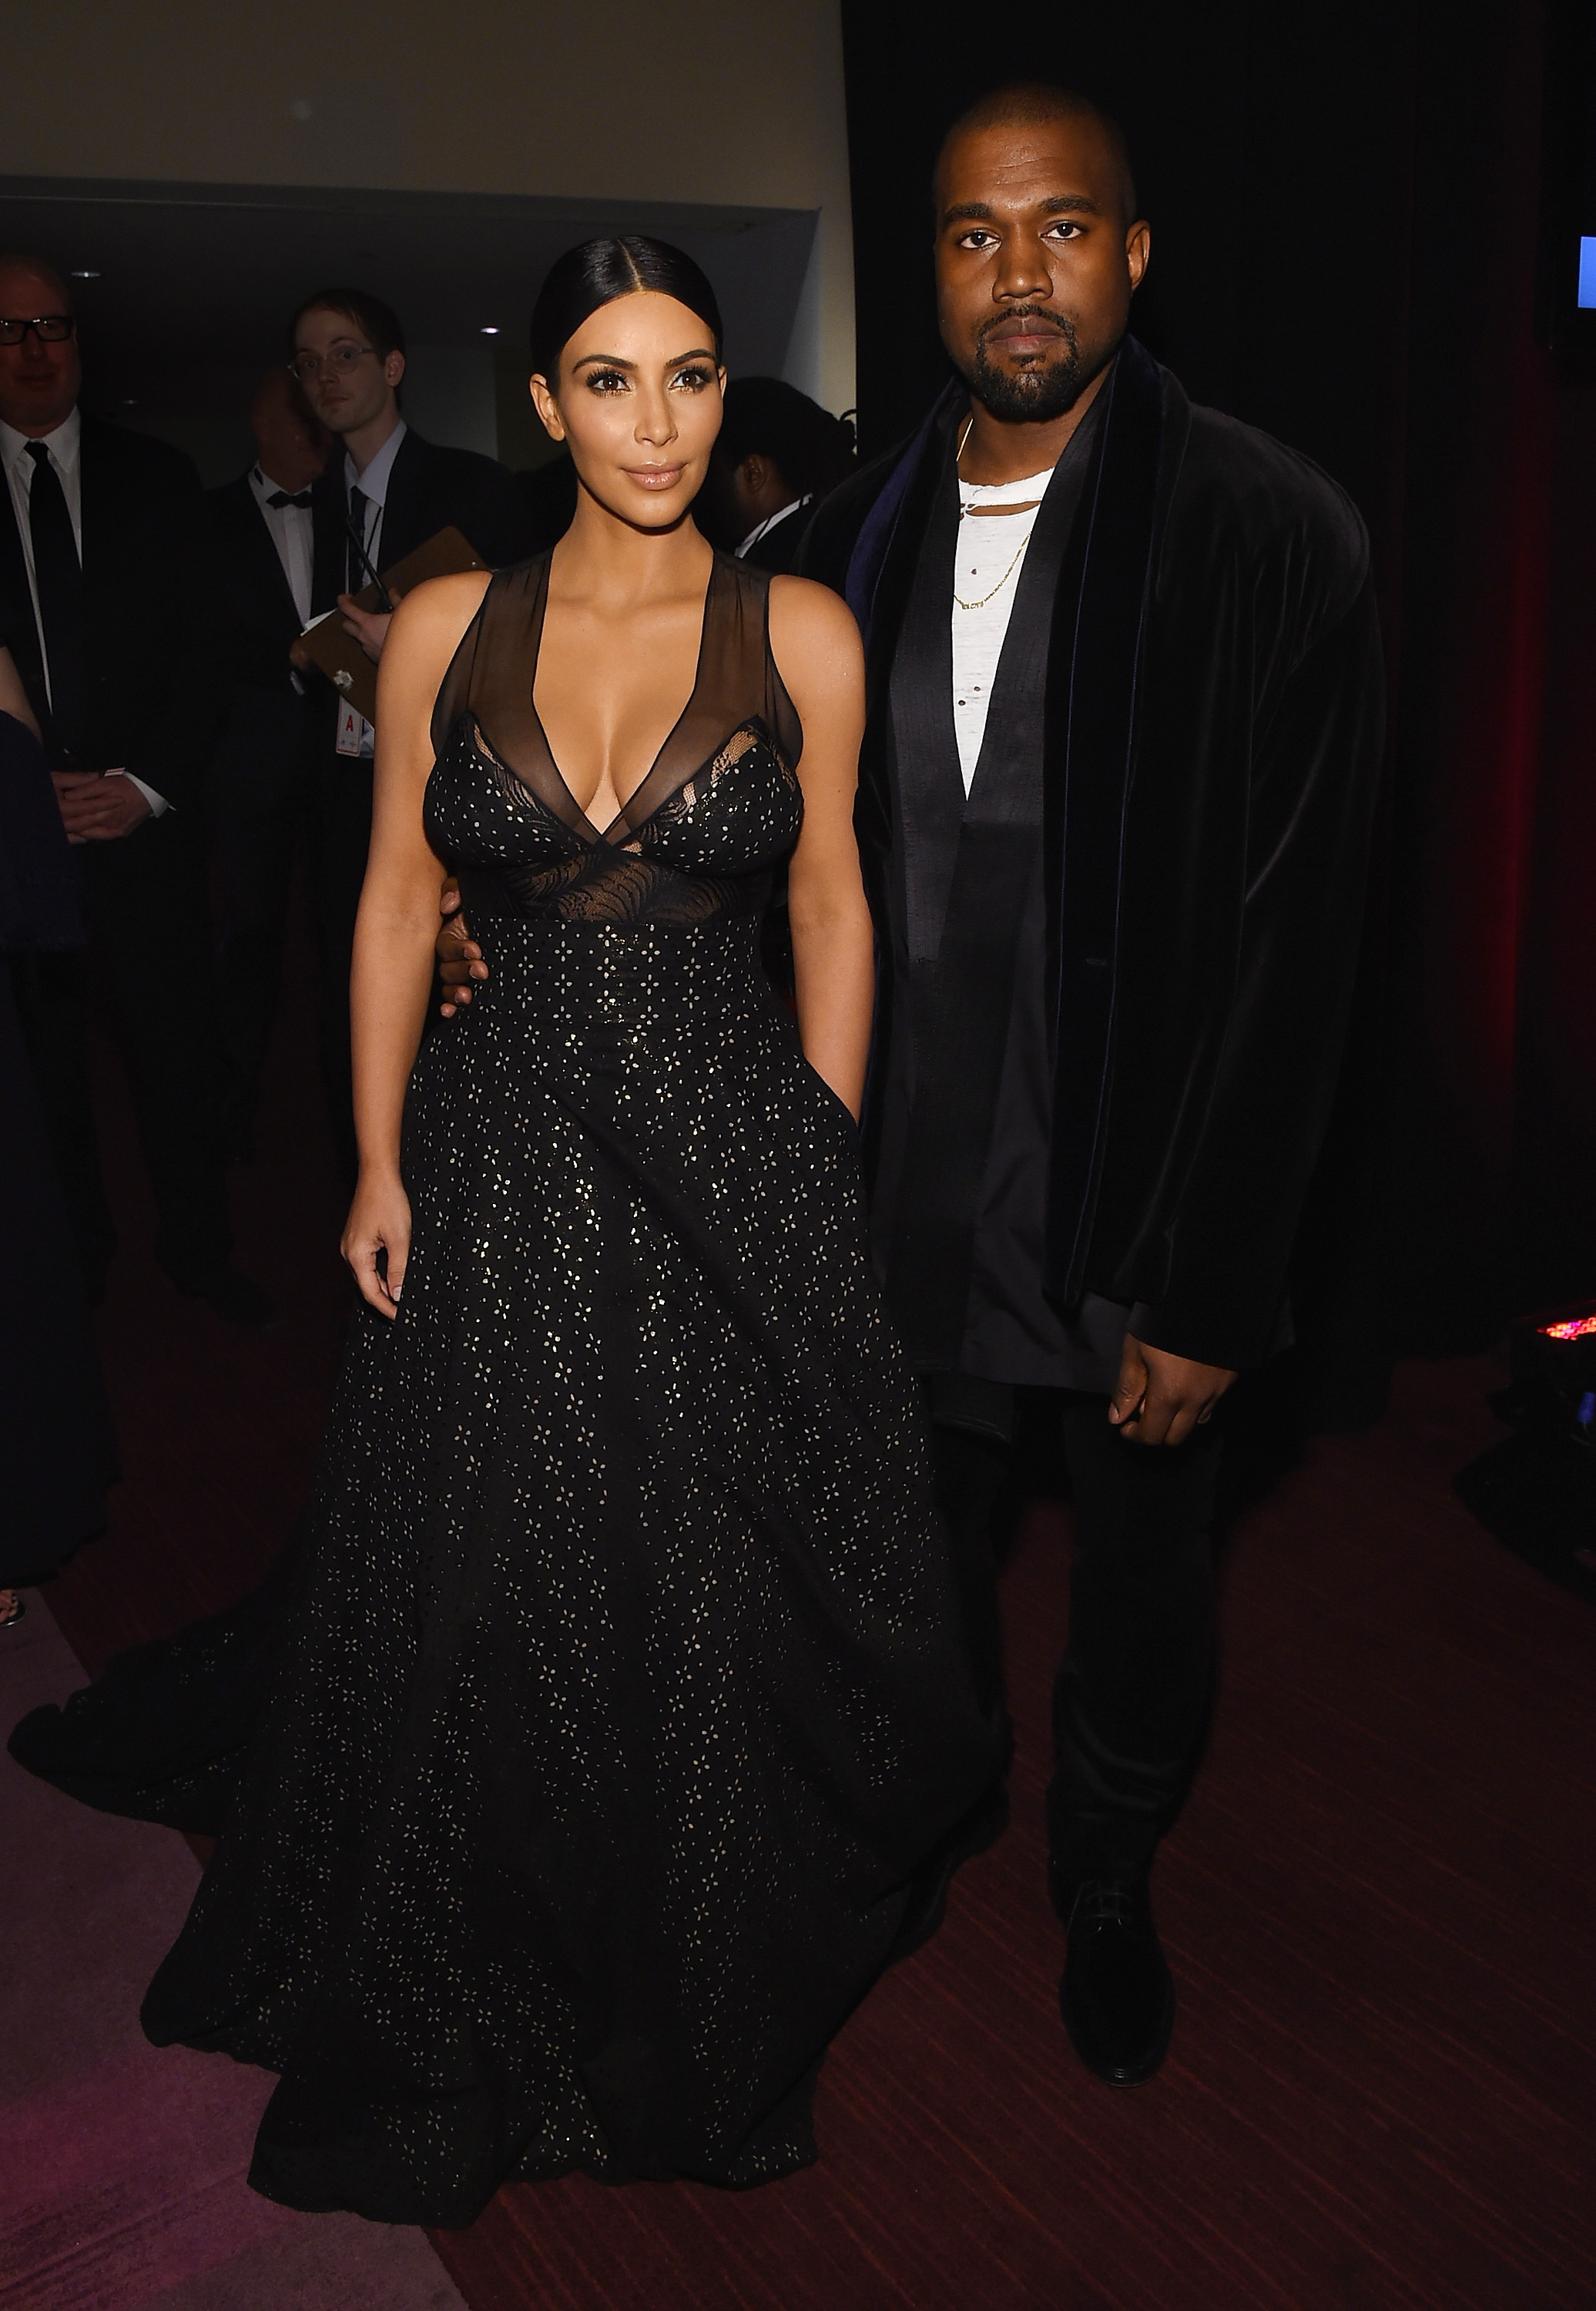 Kanye West's Marriage Proposal Lawsuit Allowed to Proceed